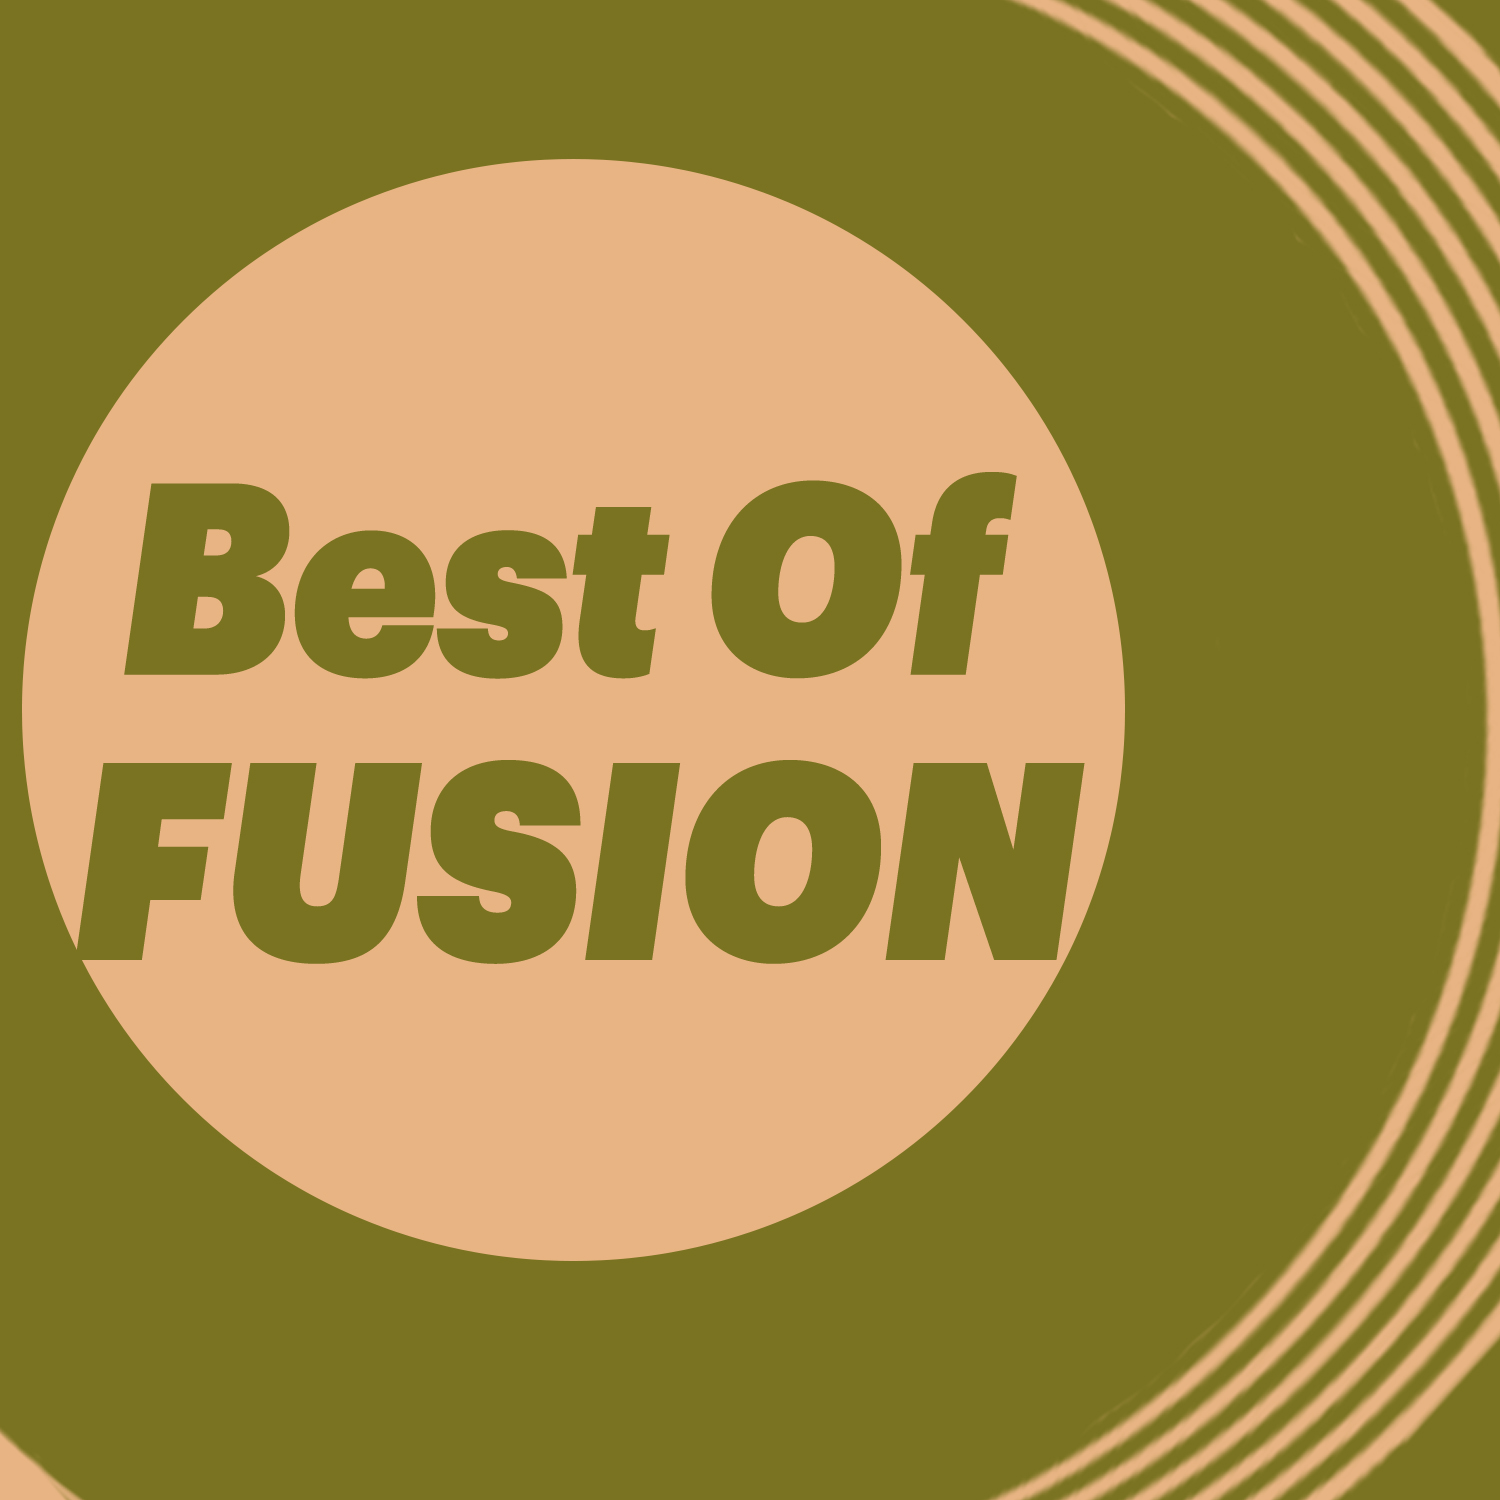 Best of Fusion,Songdew